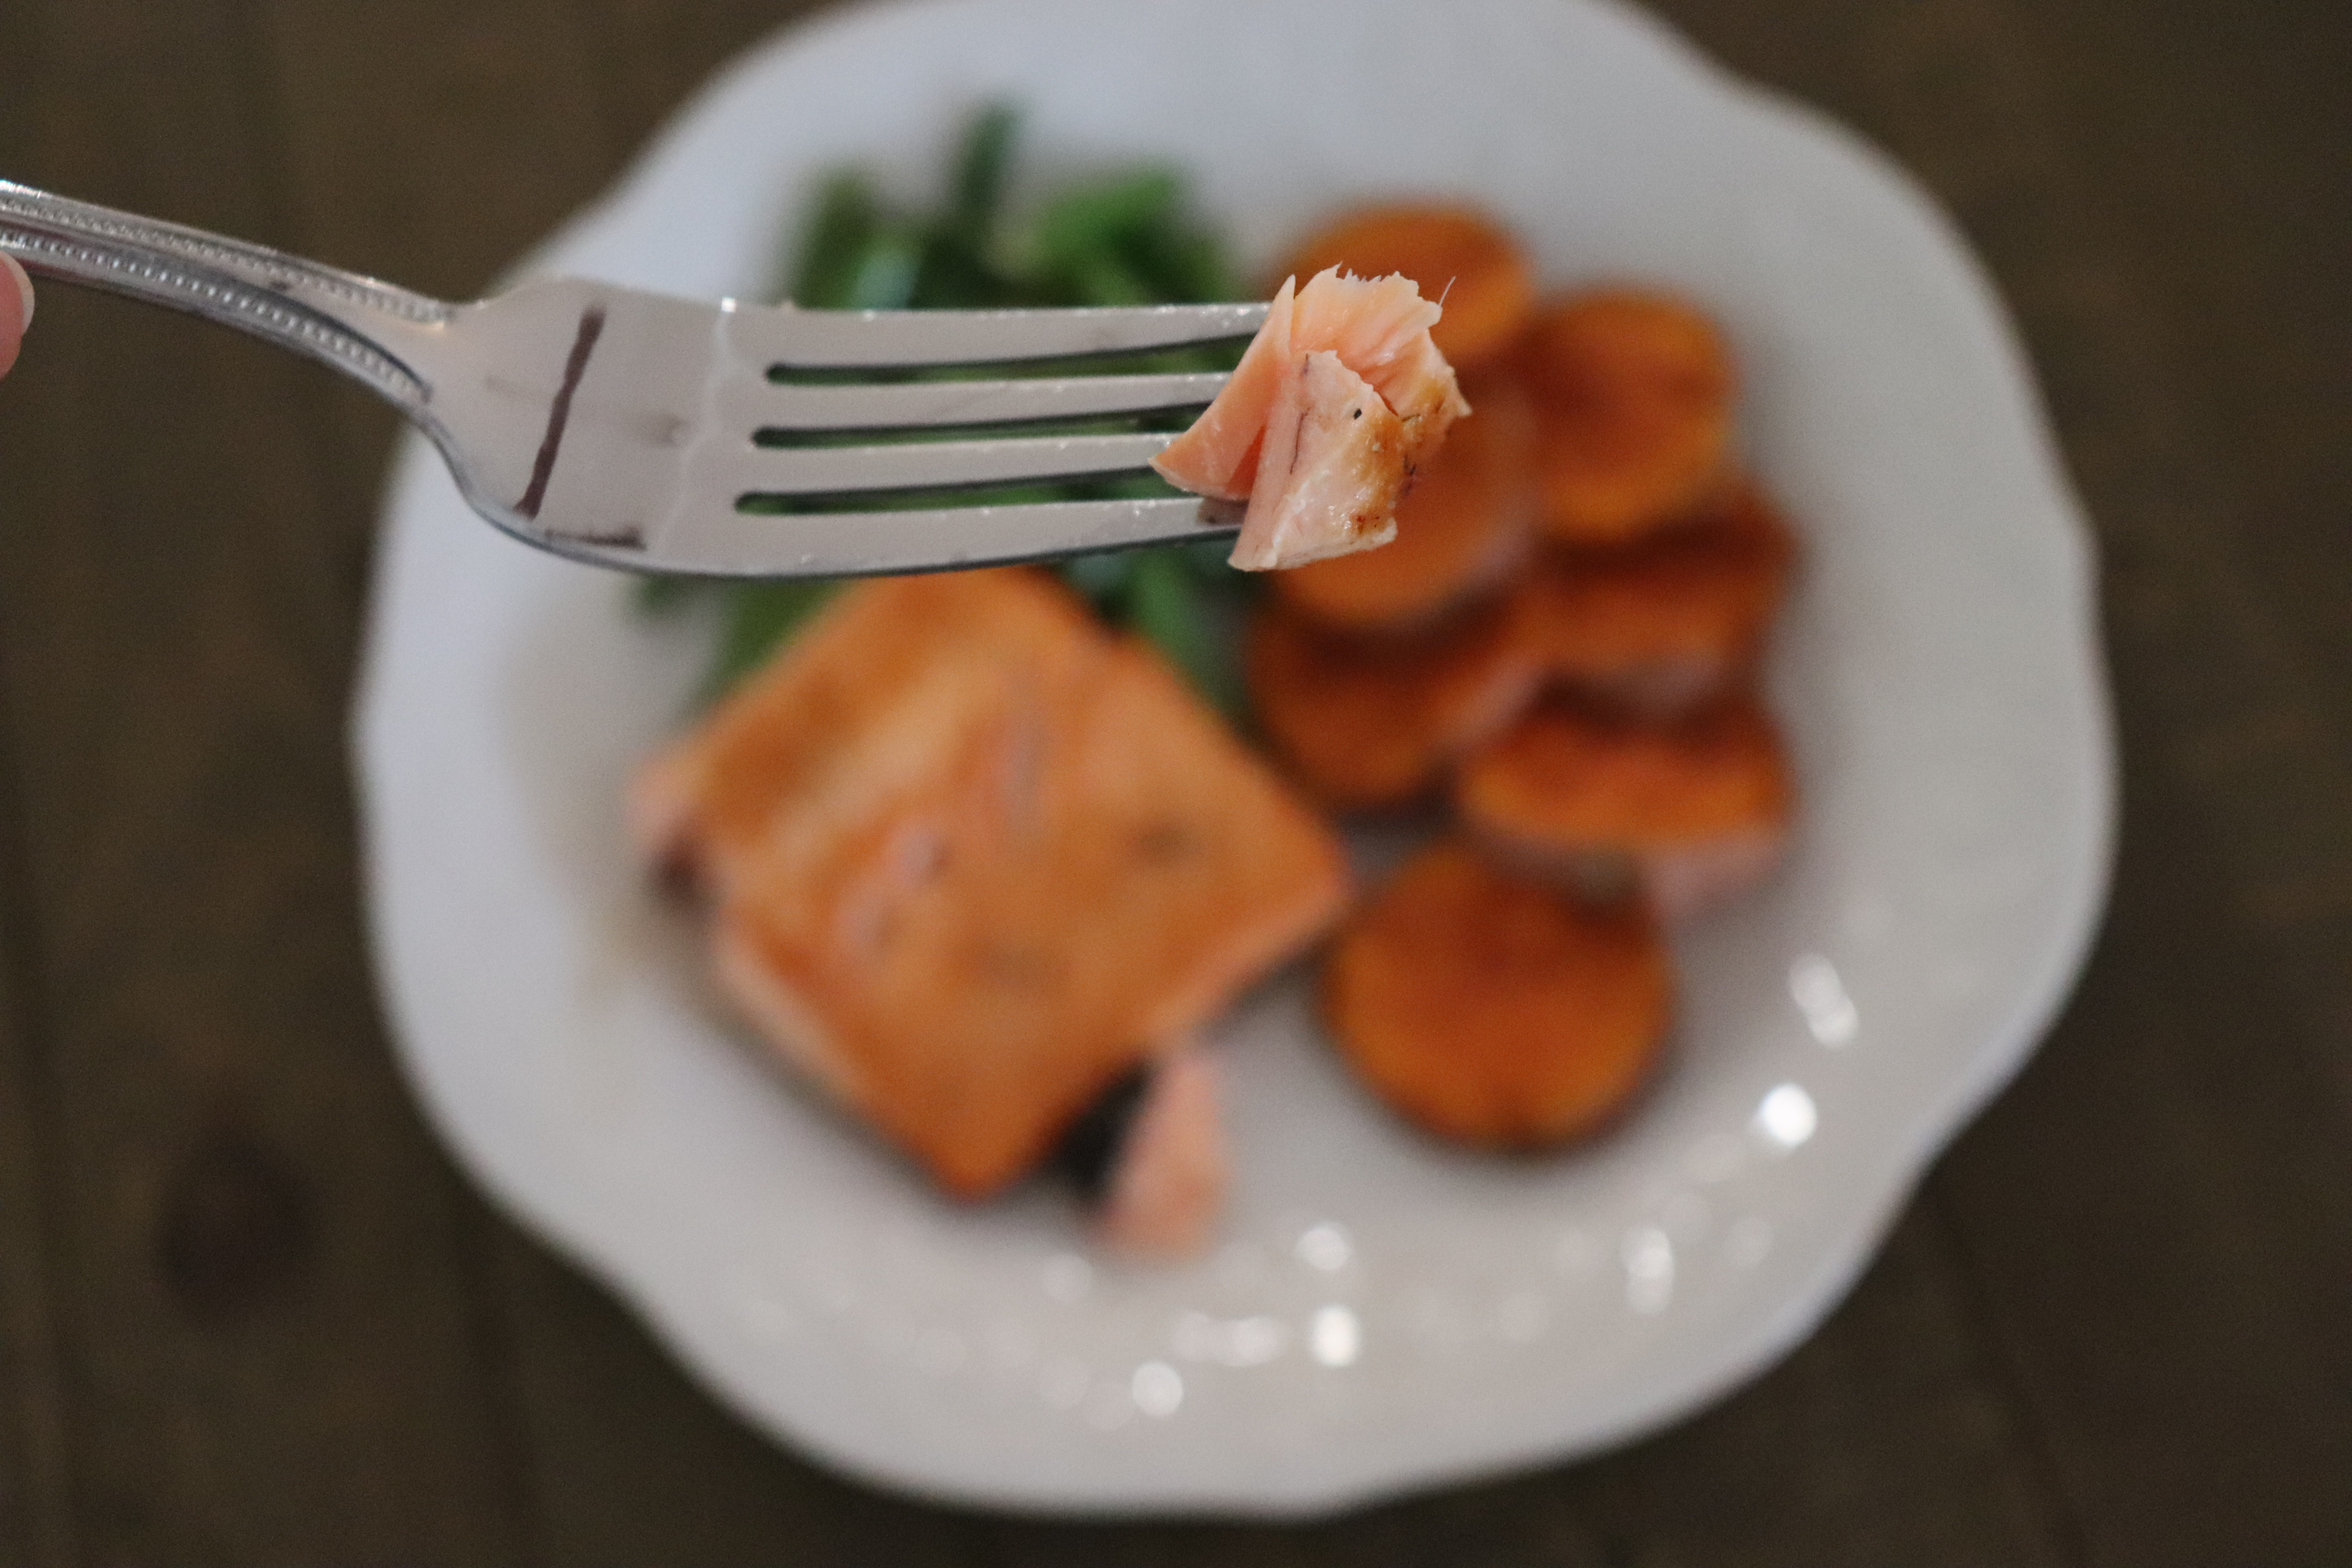 Bite of flaky salmon with a plate of salmon, sweet potatoes and green beans in the background